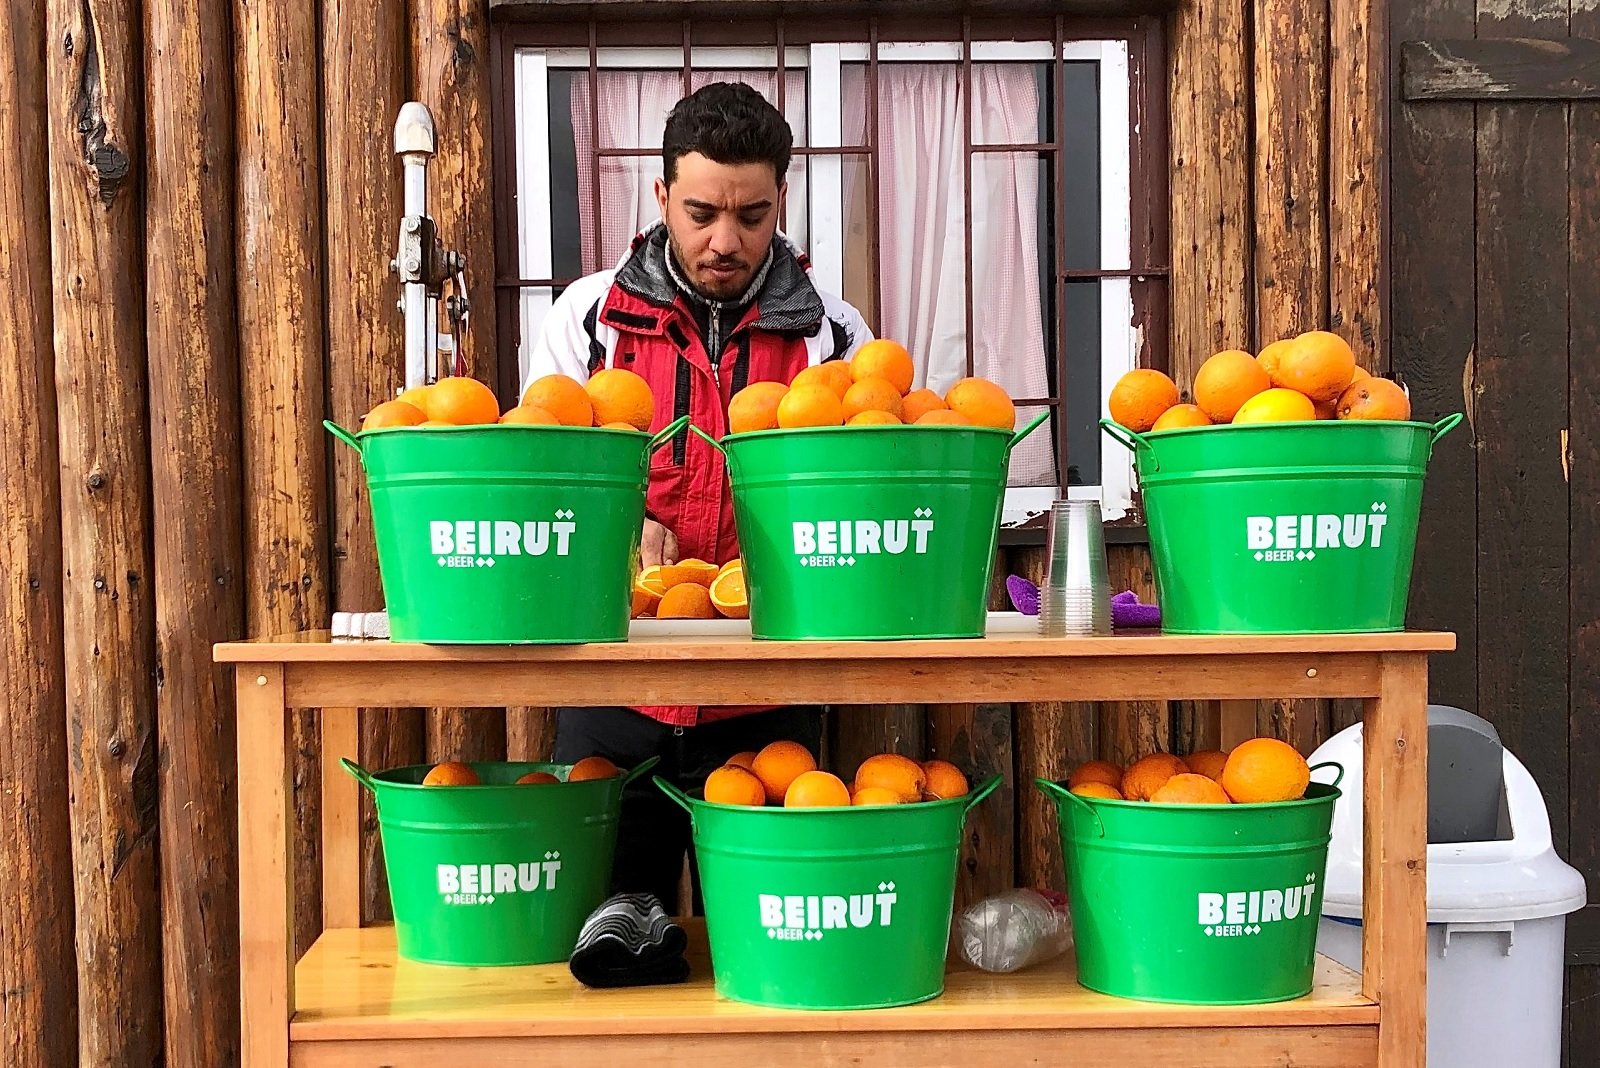 Beirut Orange Juice